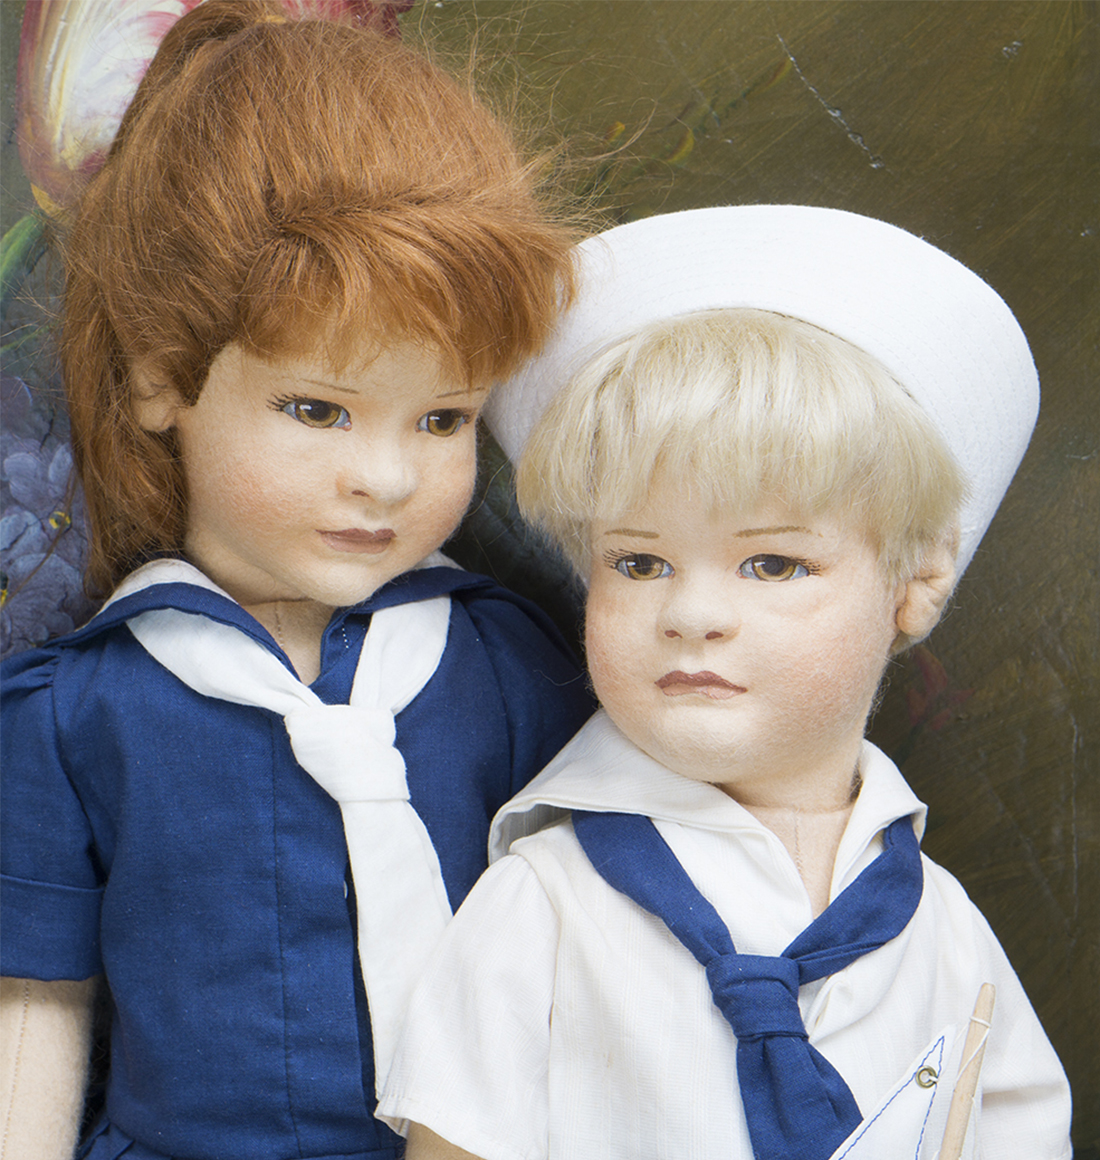 Lillian and Arthur dolls